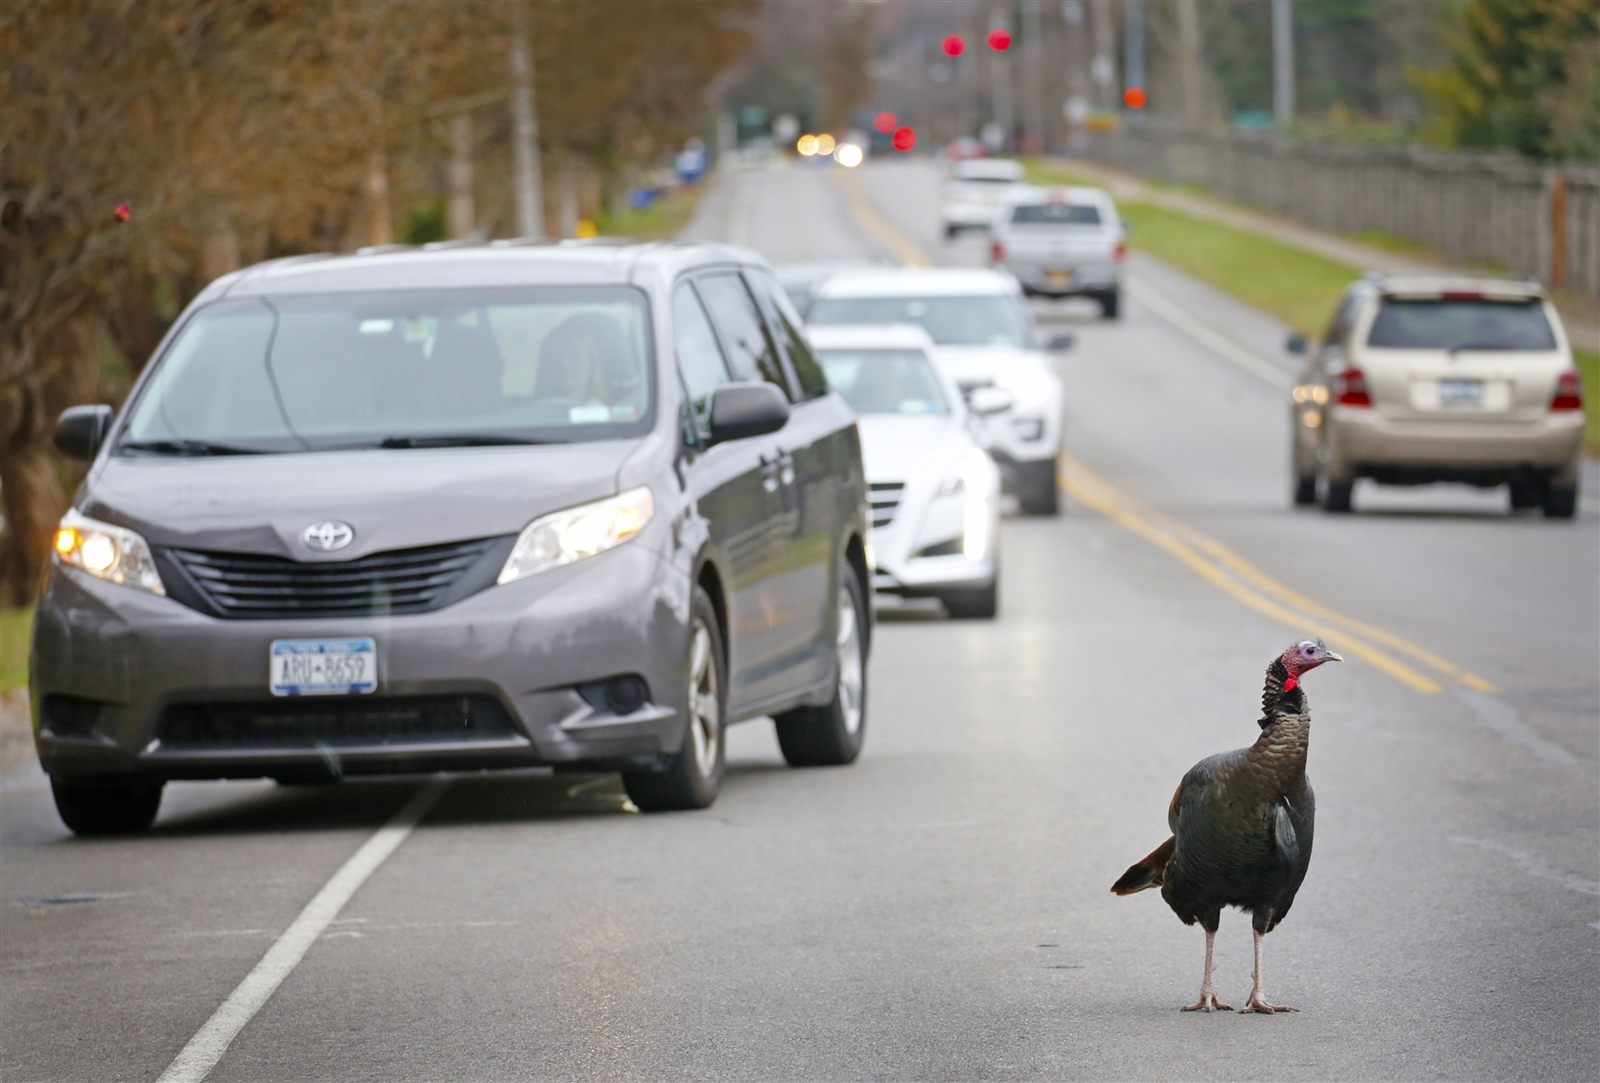 This adult turkey is notorious for standing in the middle of busy Klein Road traffic in Amherst.